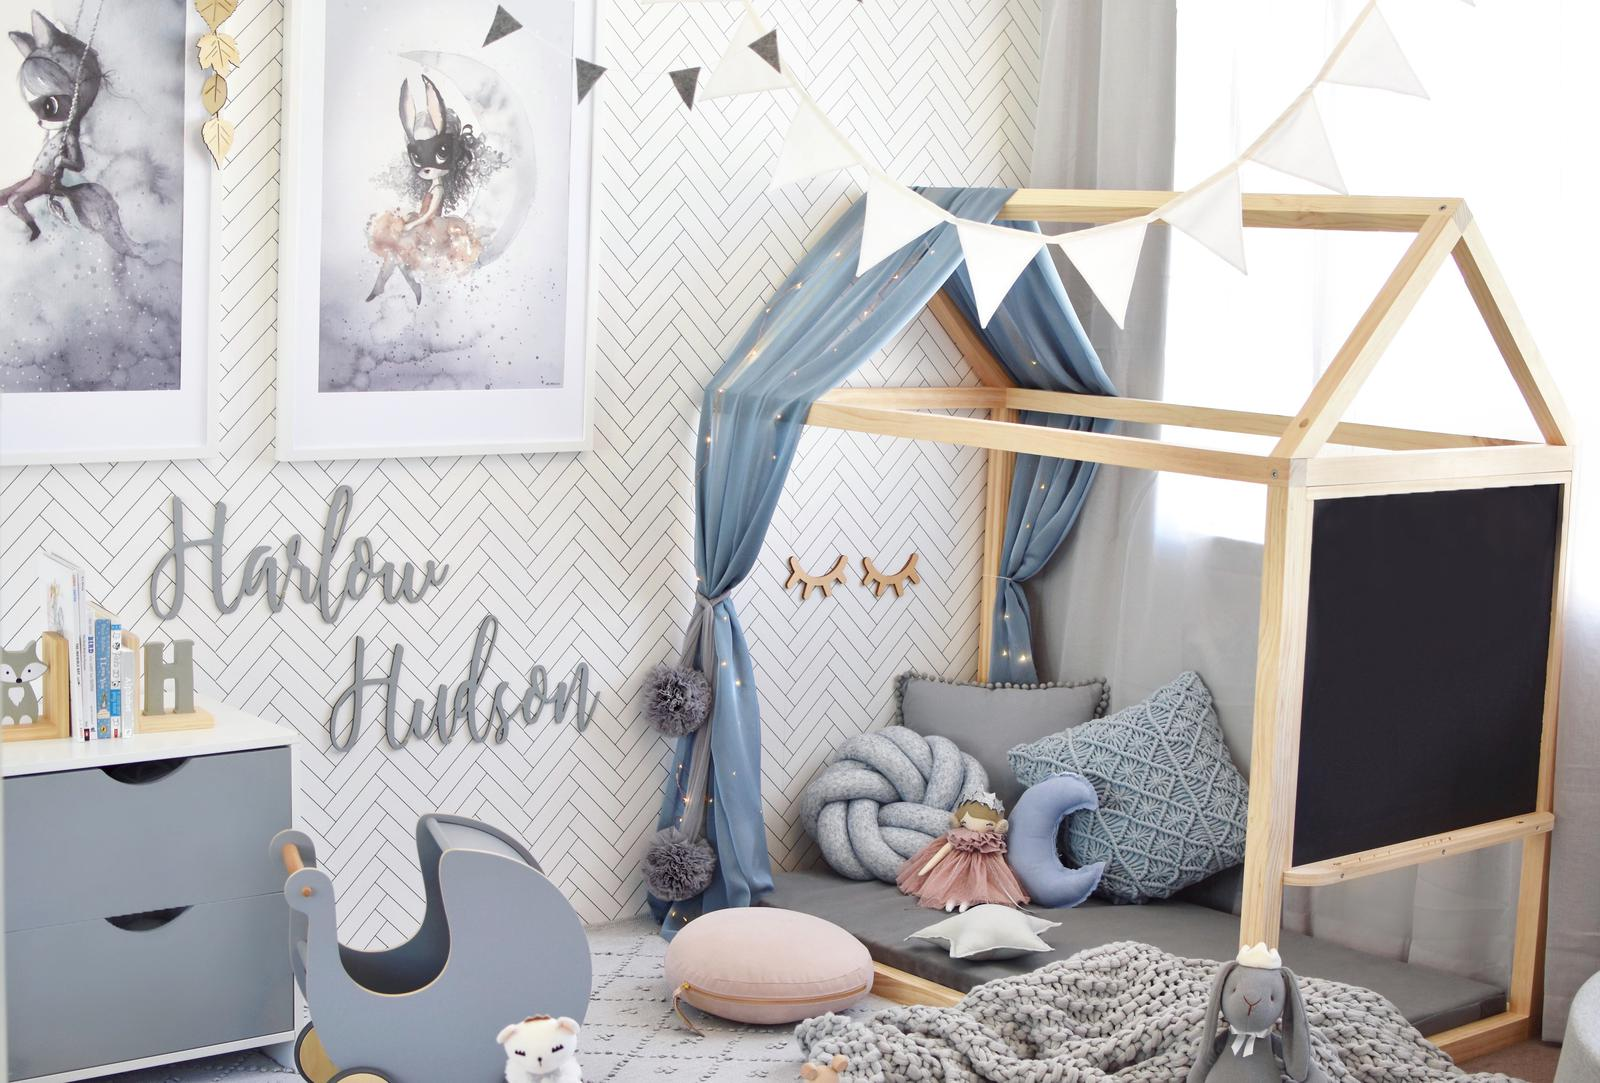 Toddler House Bed Frame and Blackboard